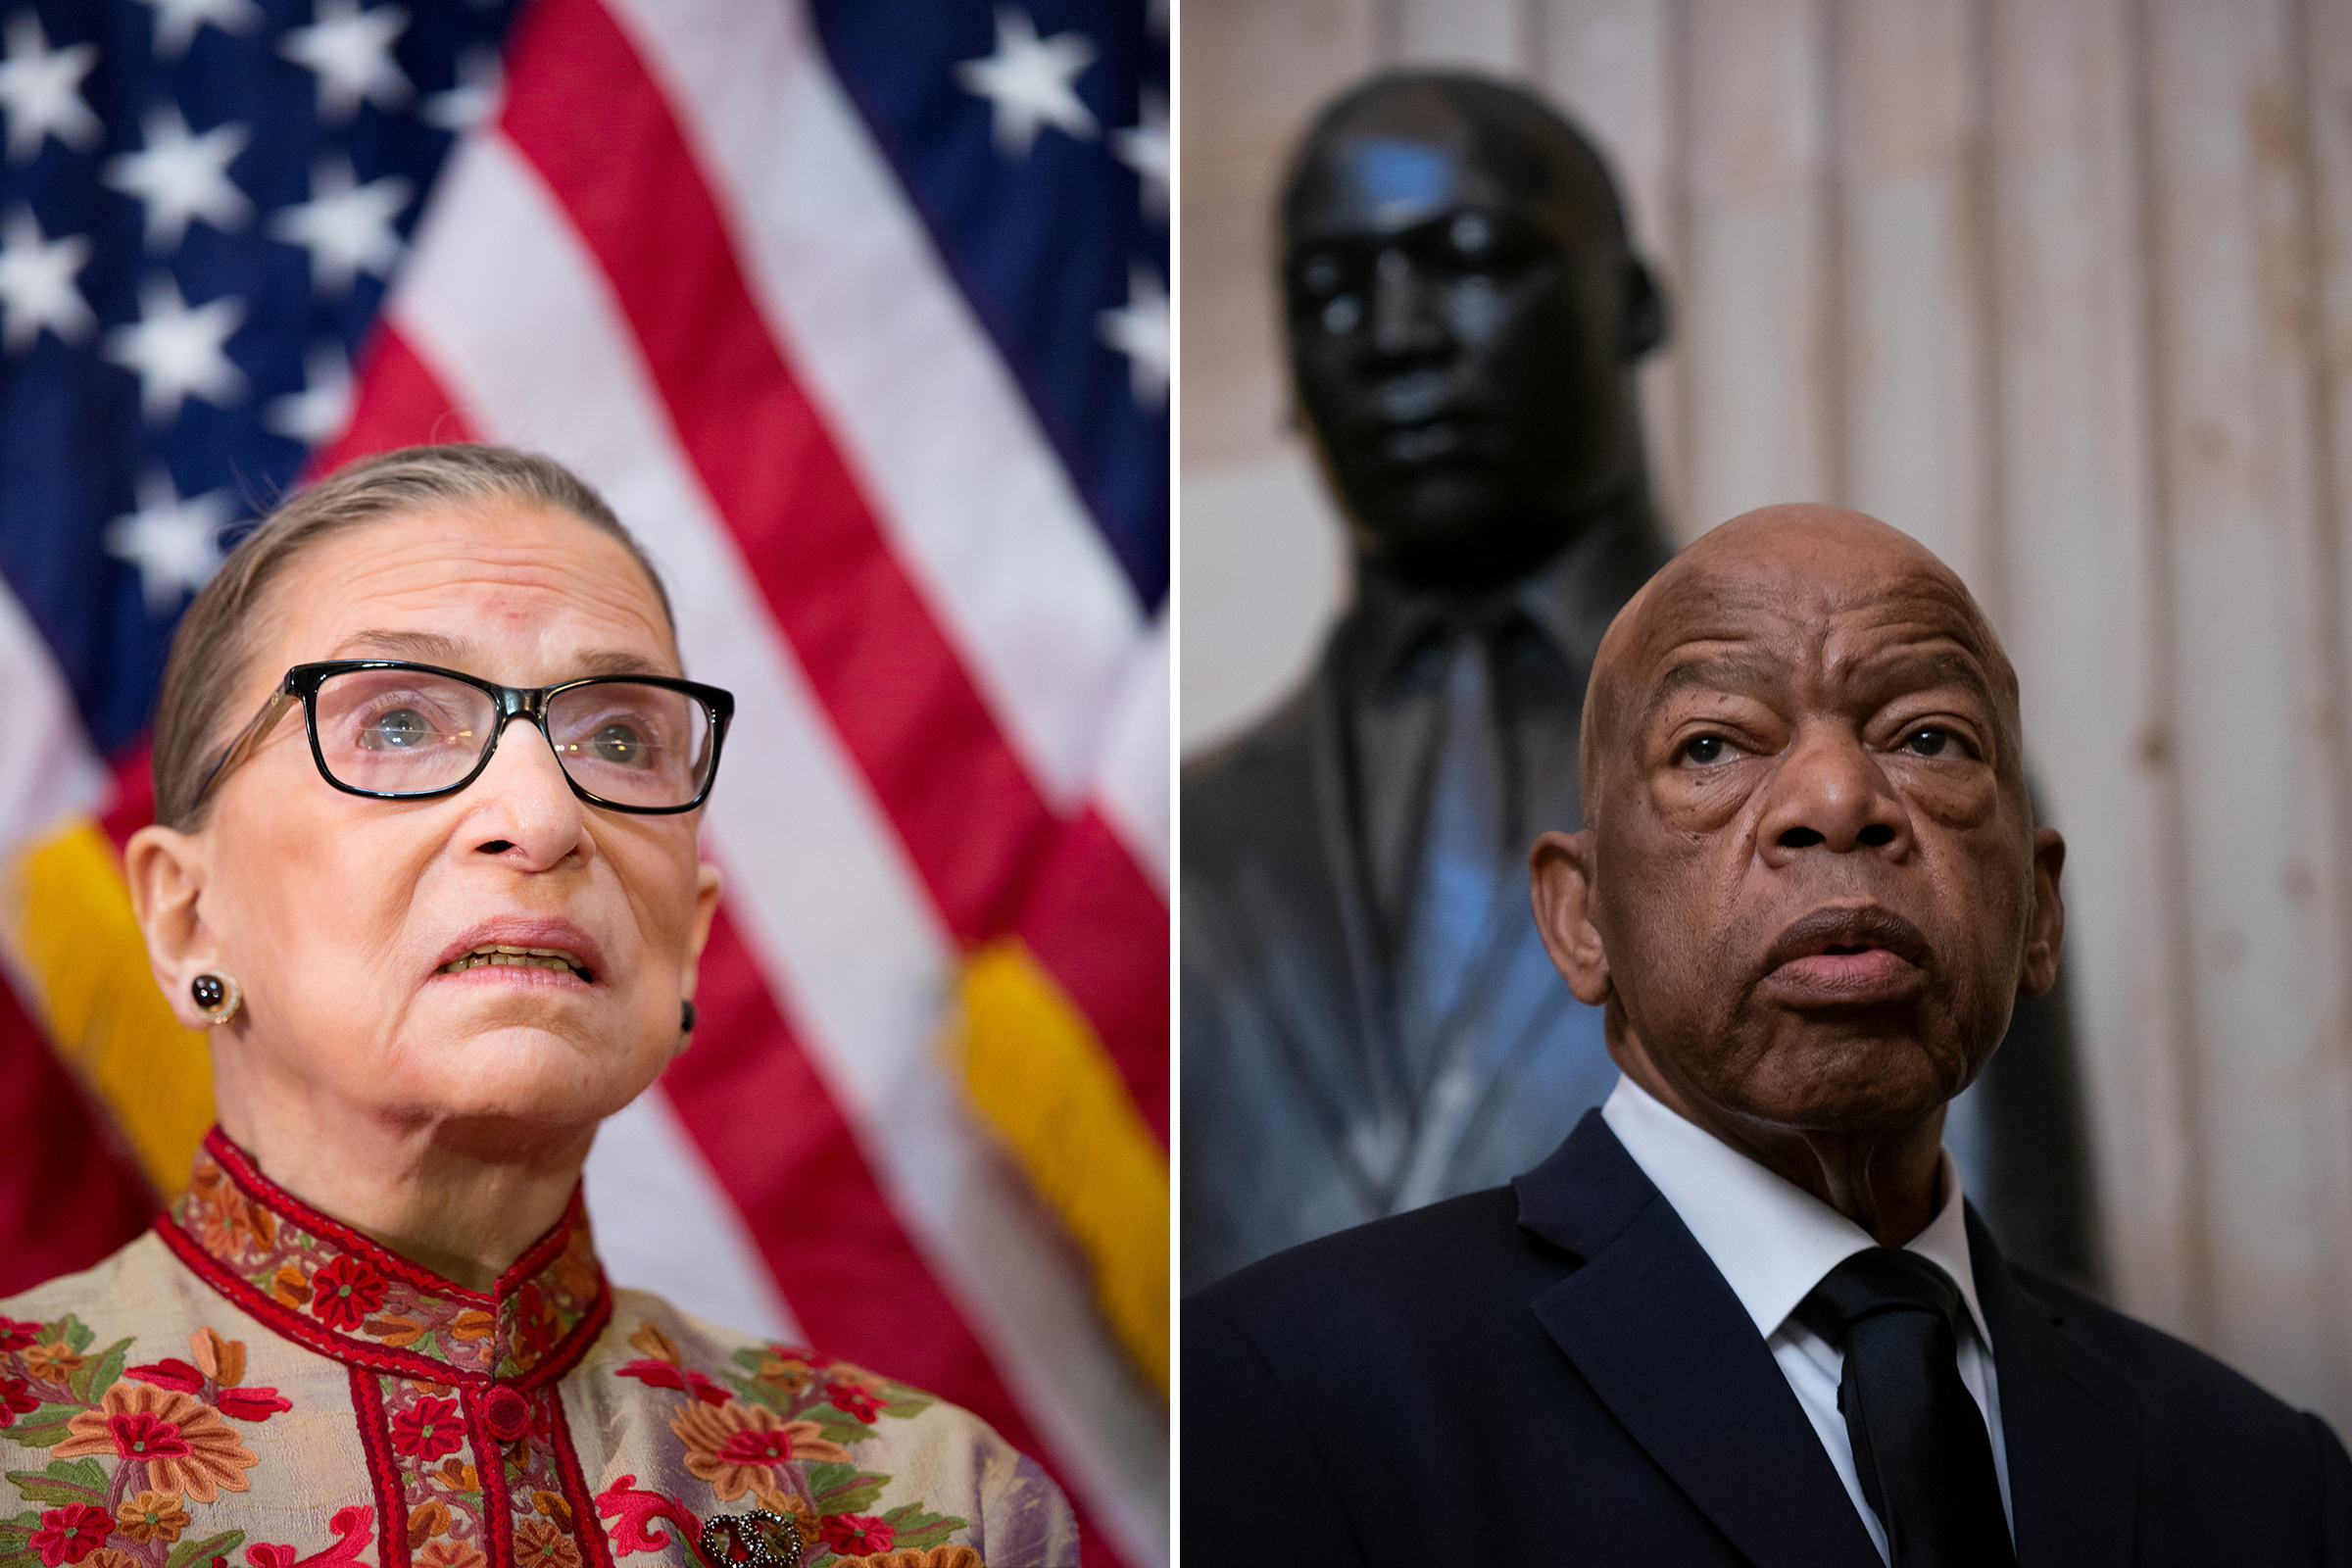 Left: U.S. Supreme Court Justice Ruth Bader Ginsburg participates in a Women's History Month reception in the U.S. capitol building in Washington, D.C. in March 2015. Right: Rep. John Lewis stands beneath a bust of Rev. Martin Luther King Jr. as members of the Congressional Black Caucus gather for the memorial ceremony for the late Maryland Rep. Elijah Cummings on Oct. 24, 2019.